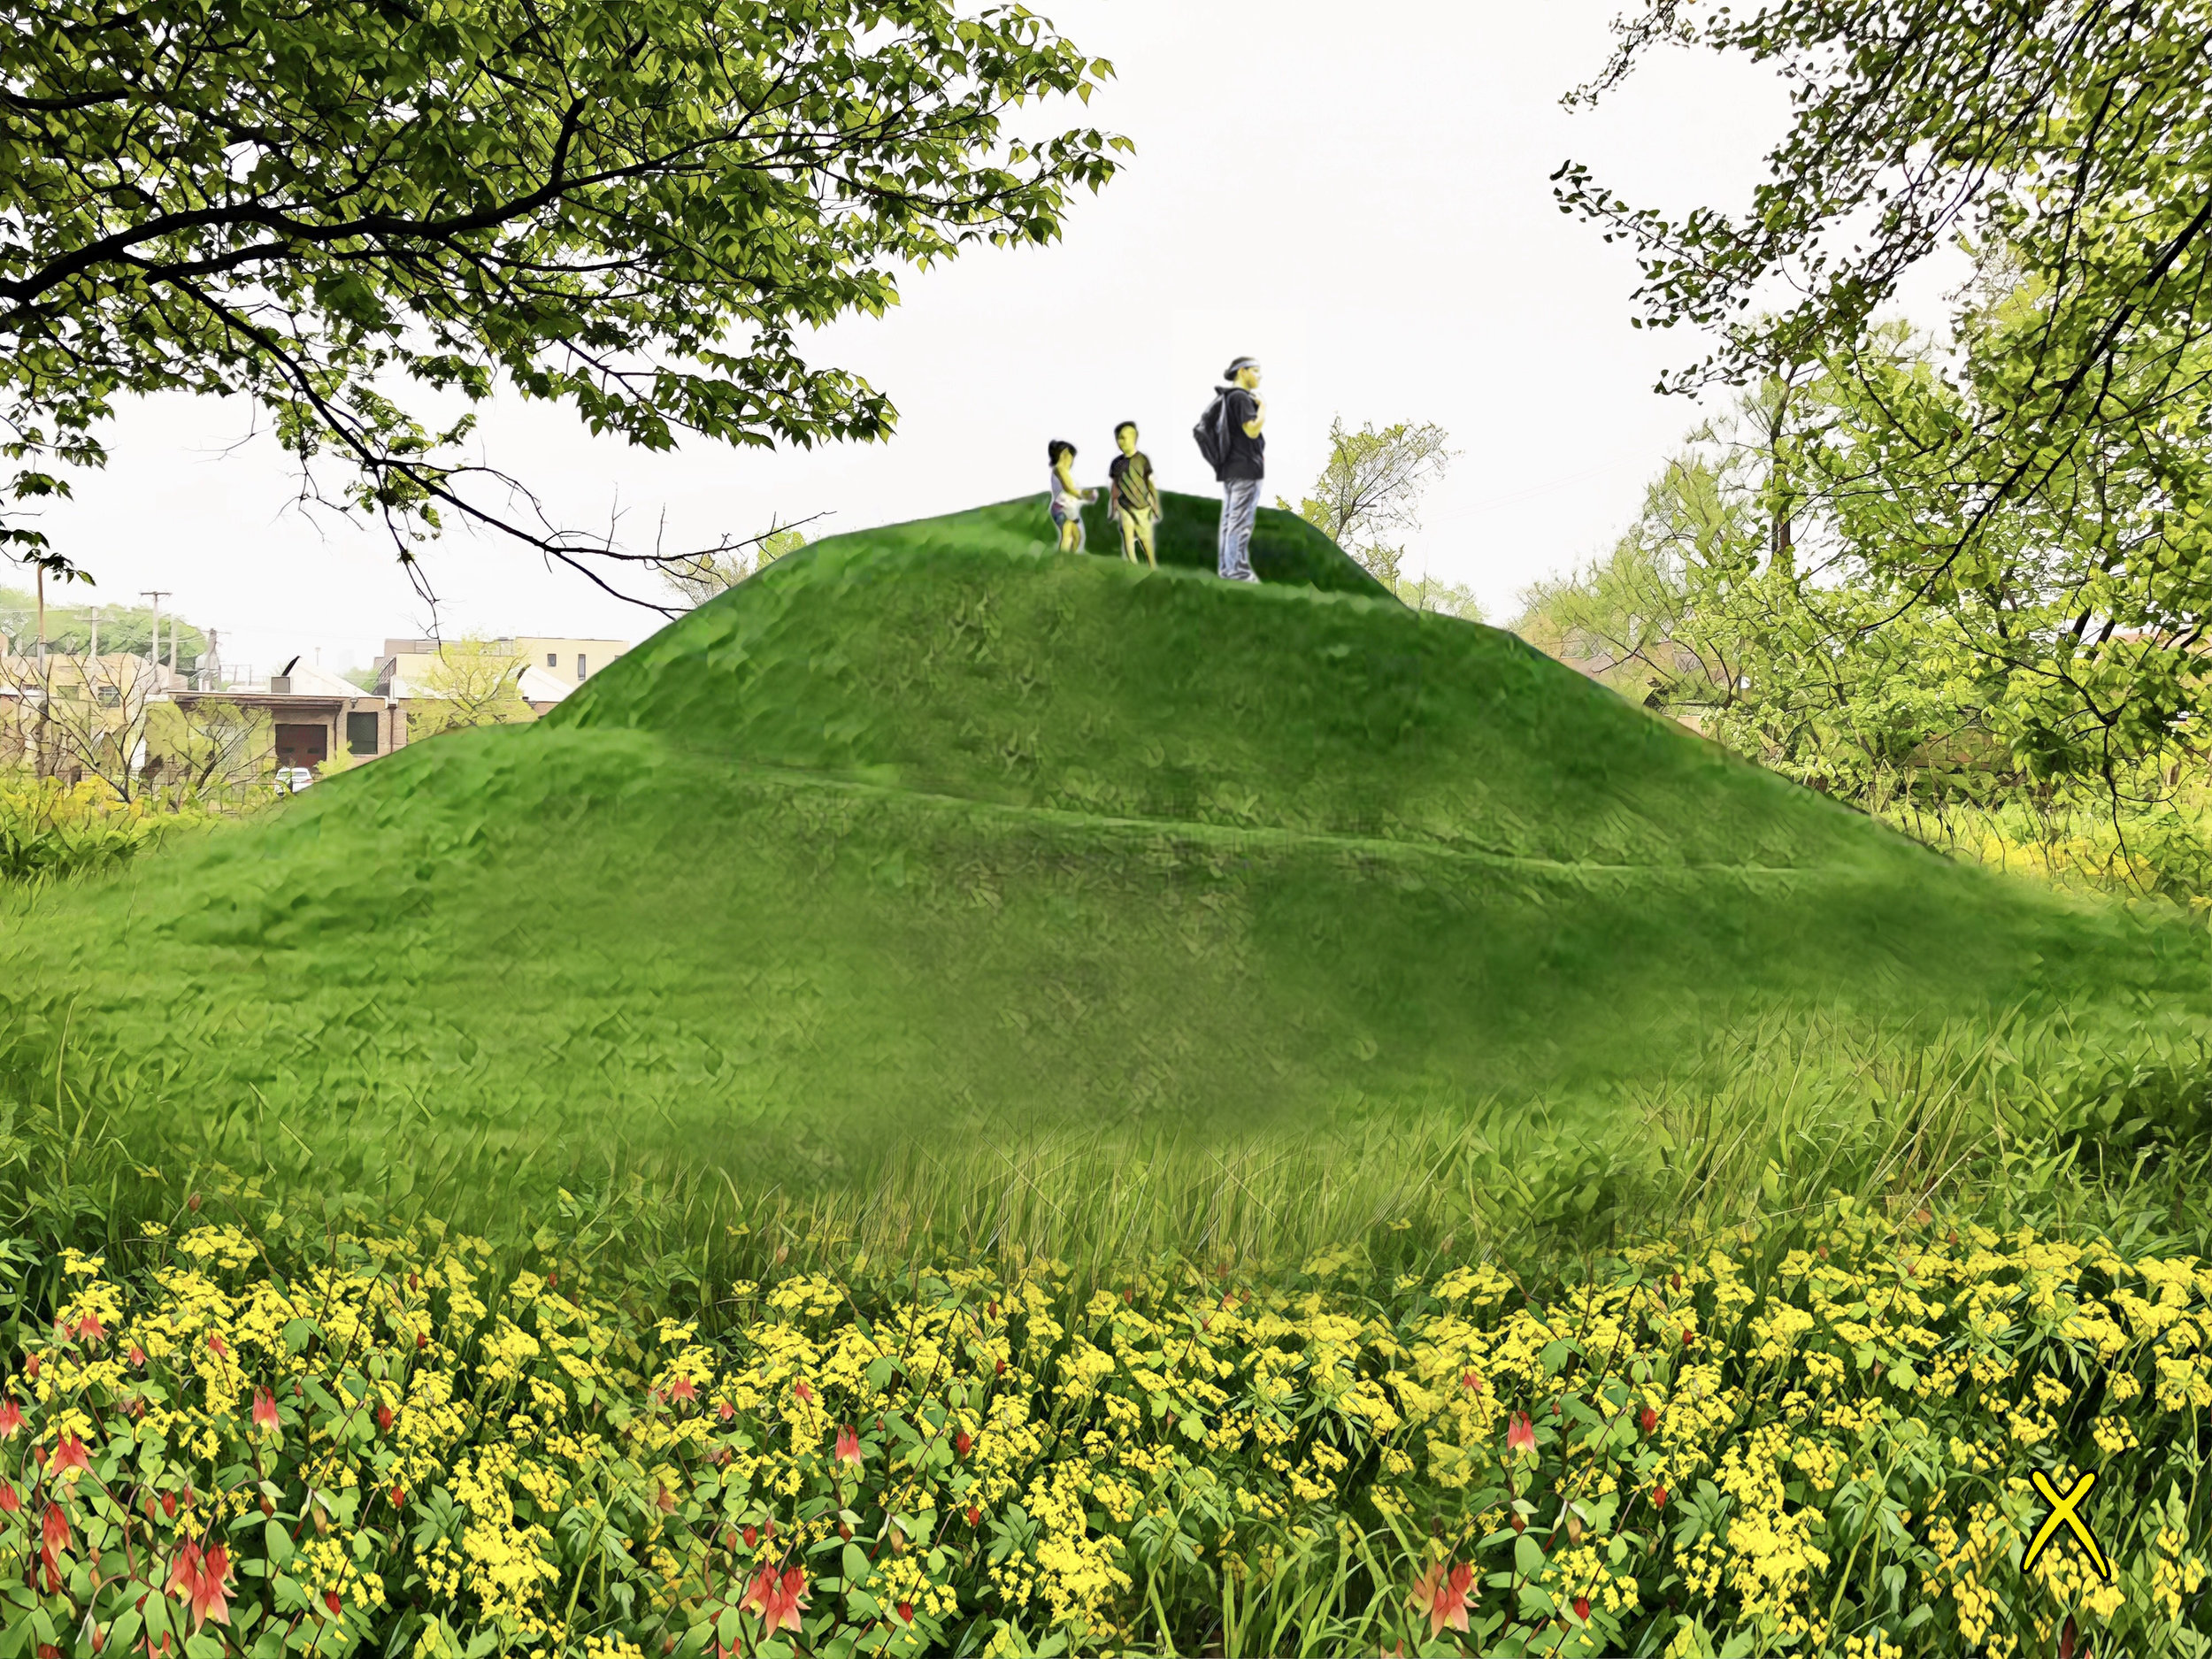 Coil Mound - The Chicago Public Art Group is proposing the installation of an earthen mound along the western banks of the Chicago River in Horner Park.